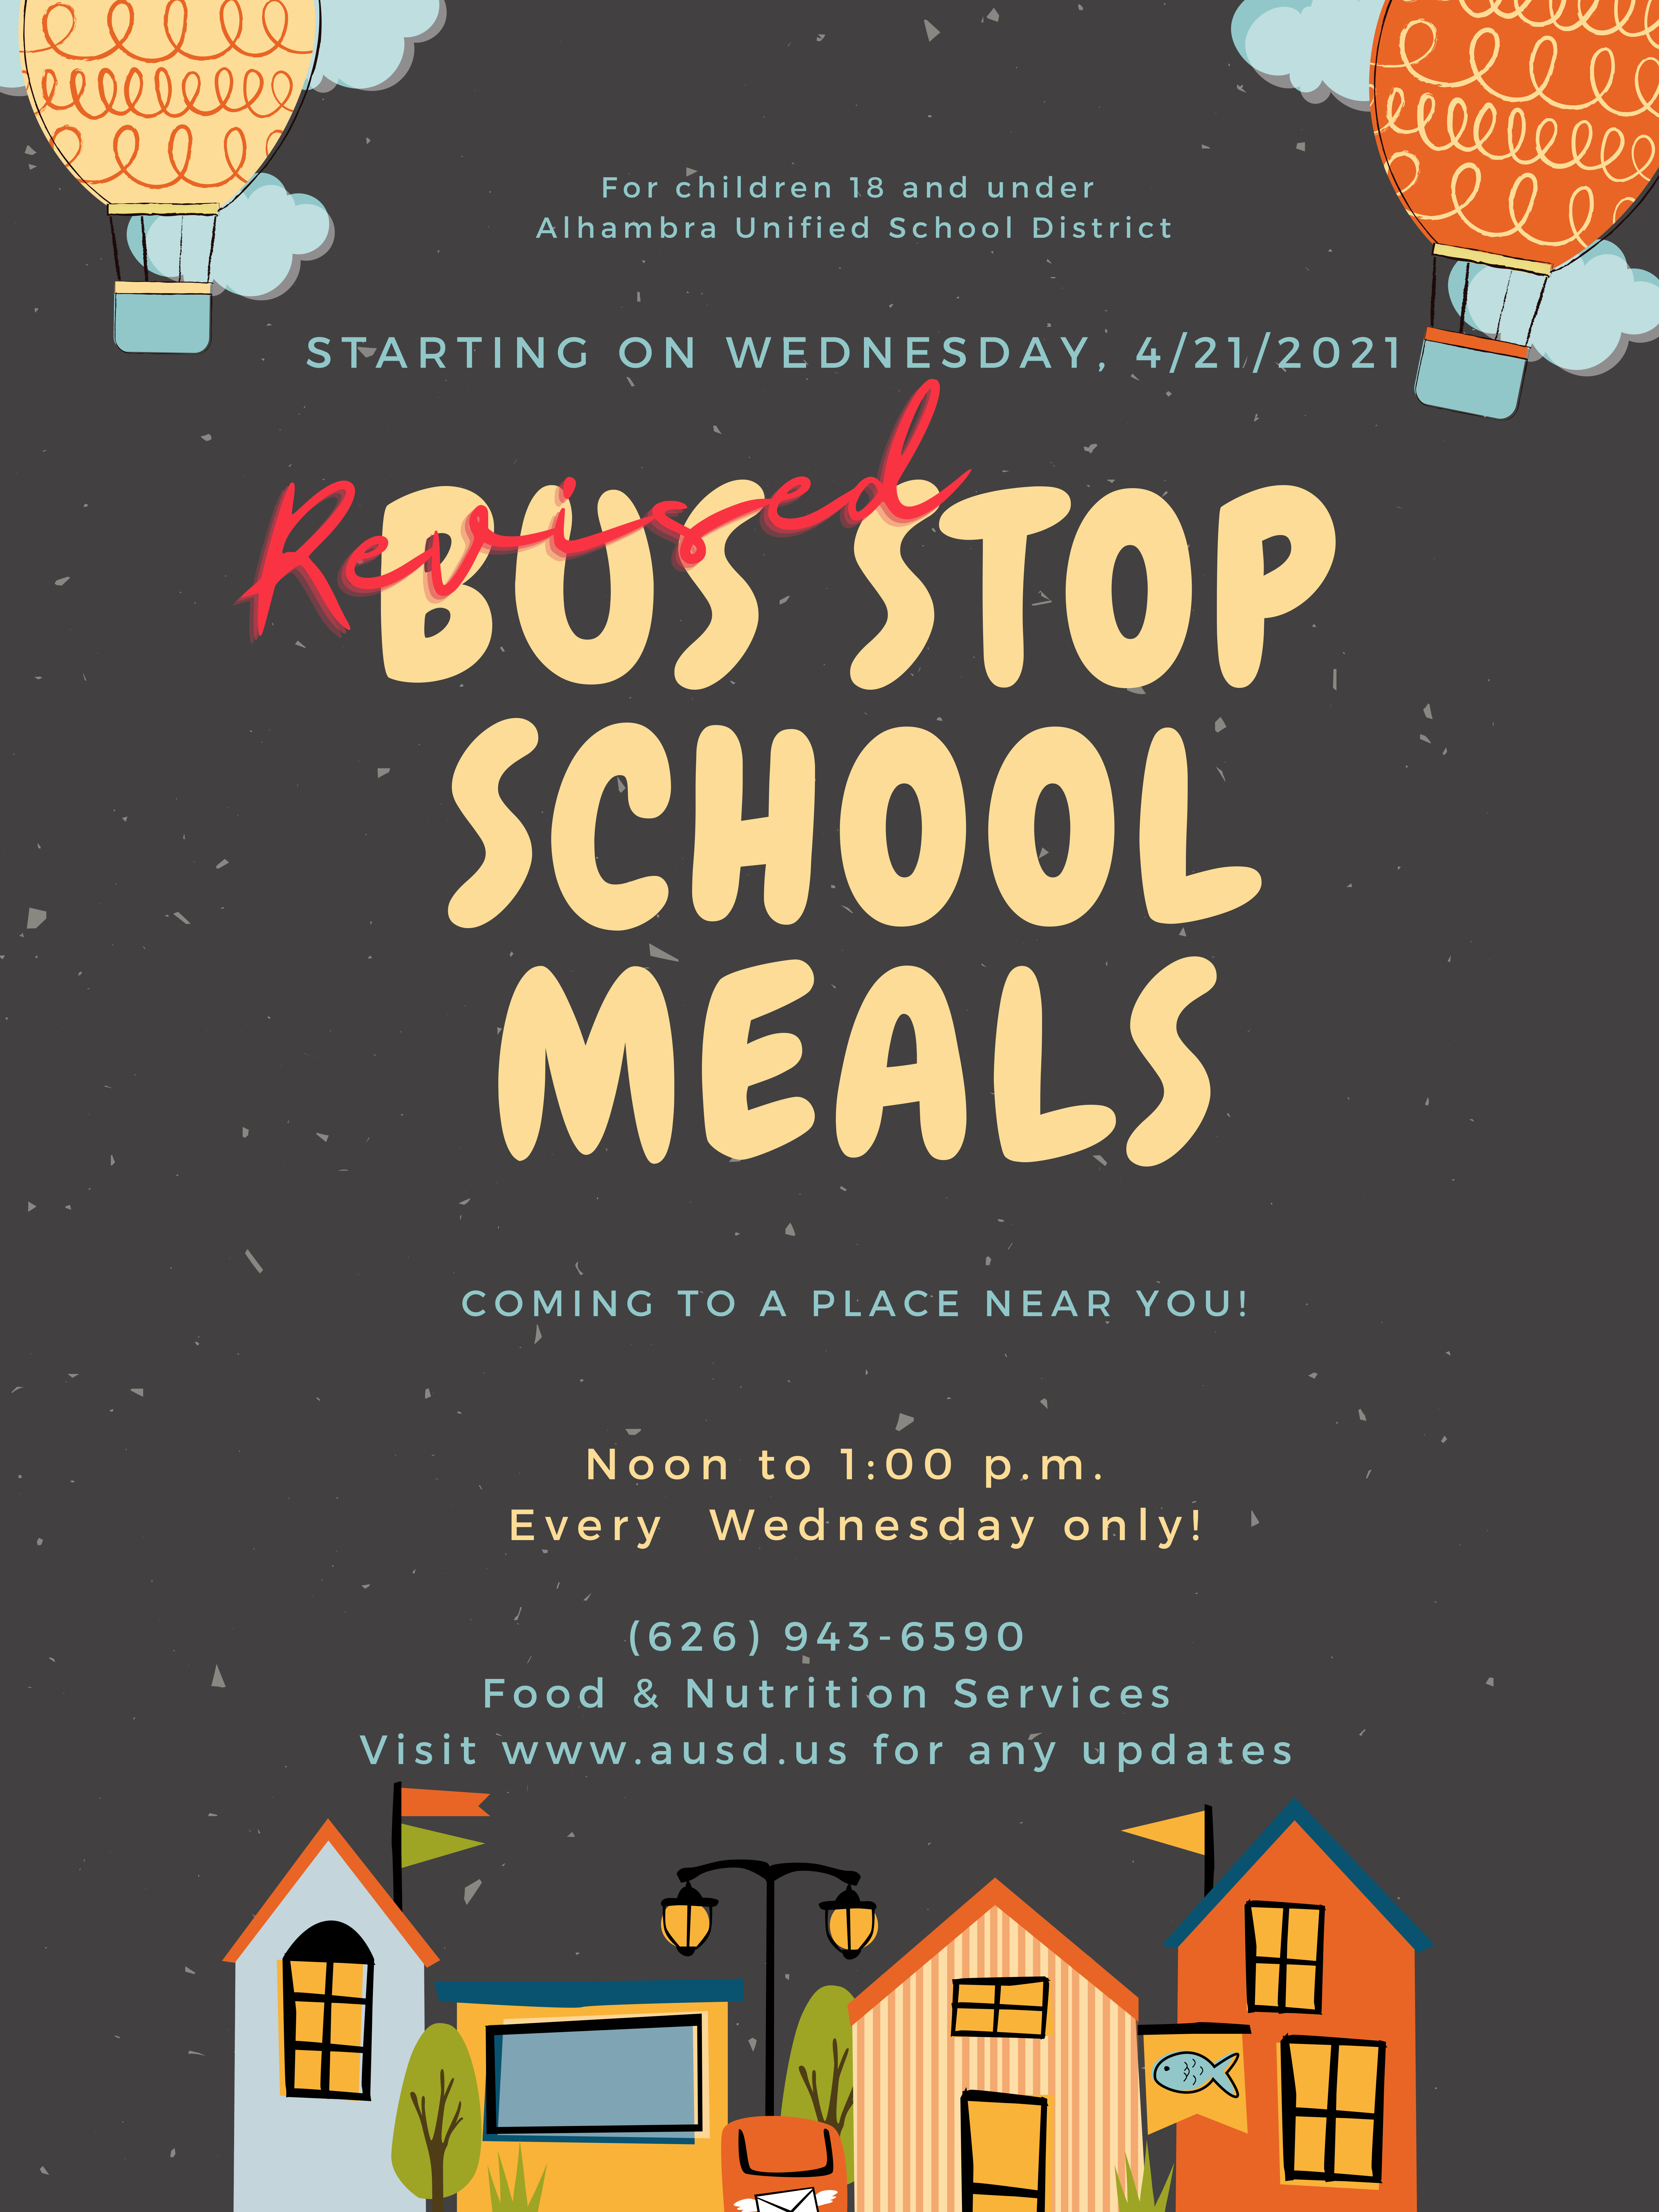 Bus Stop School Meals revised April 21 2021-1.jpg